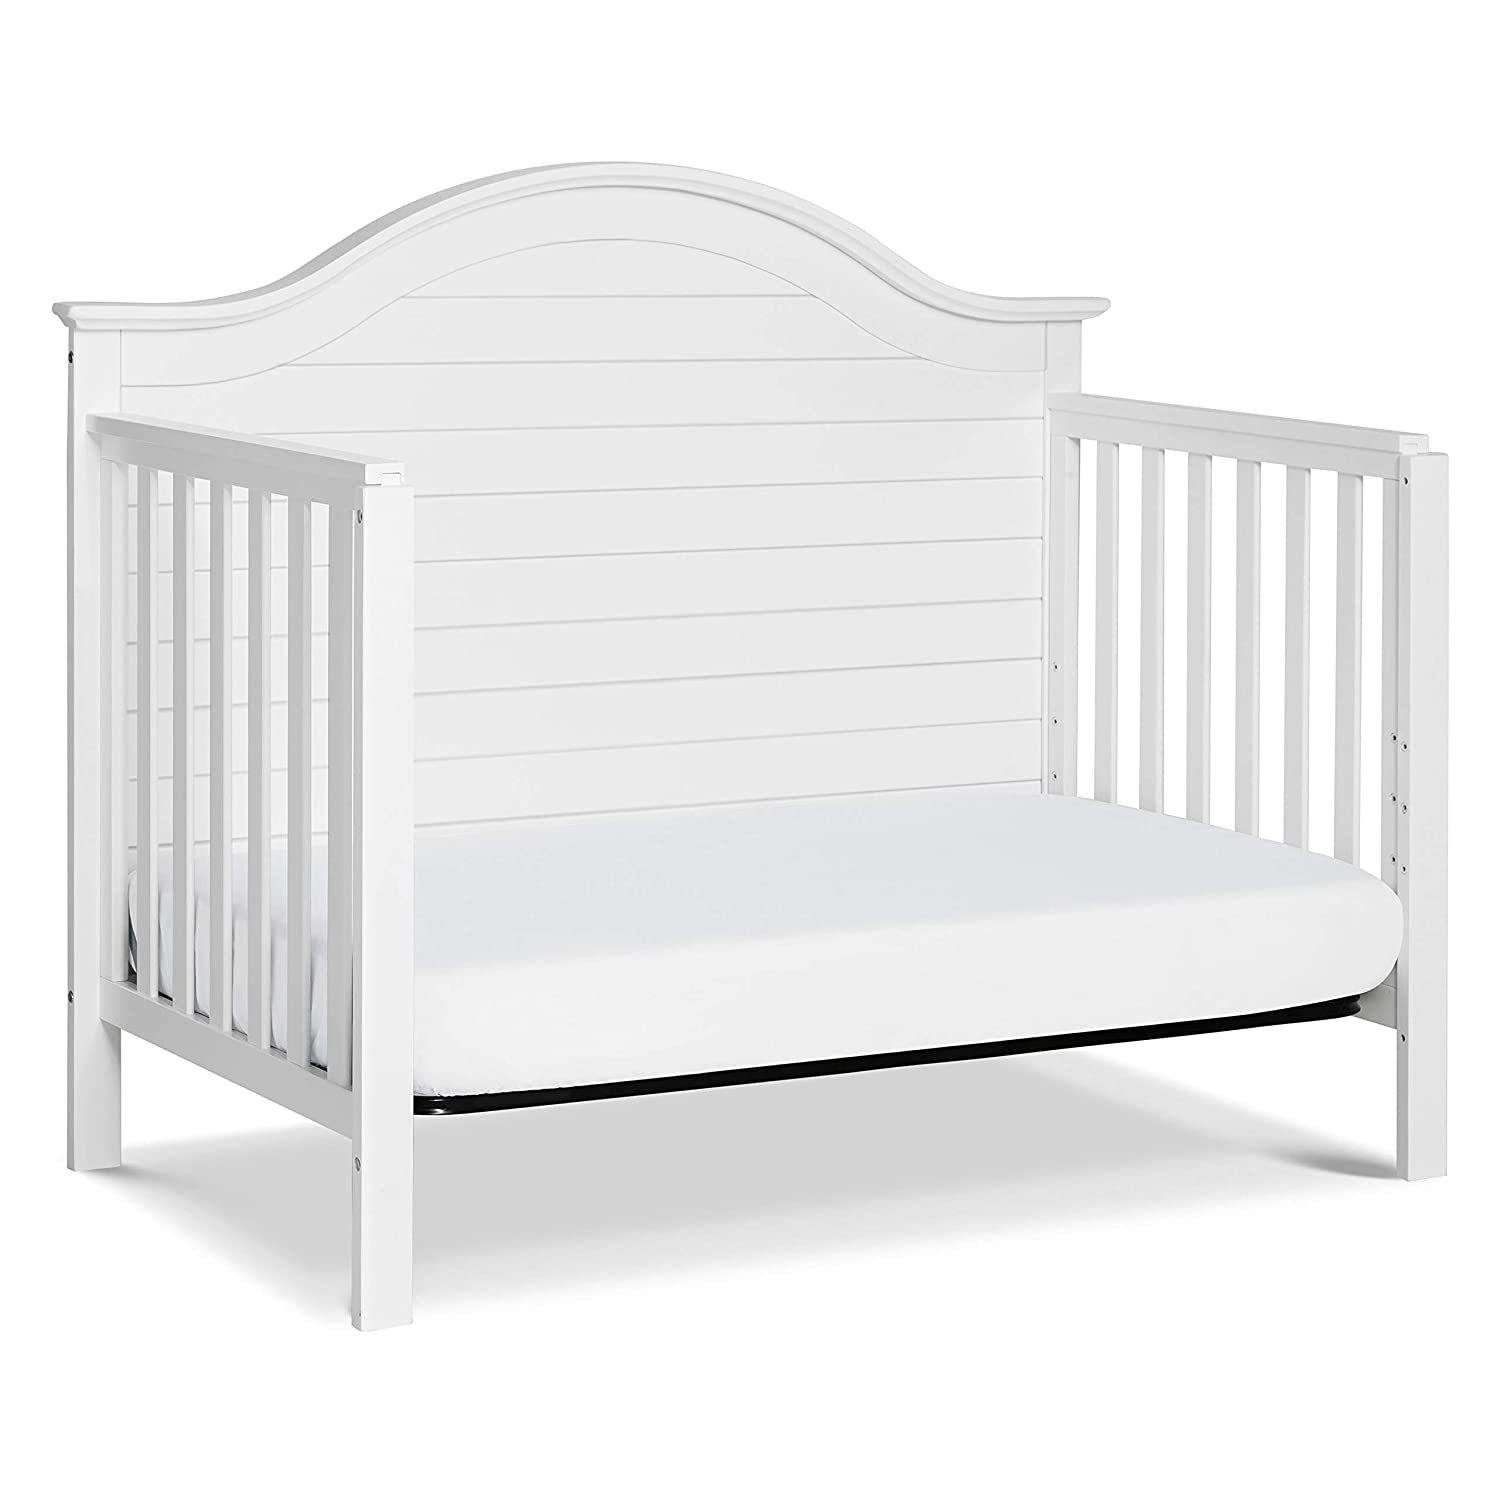 Convertible Crib in White | Greenguard Gold Certified